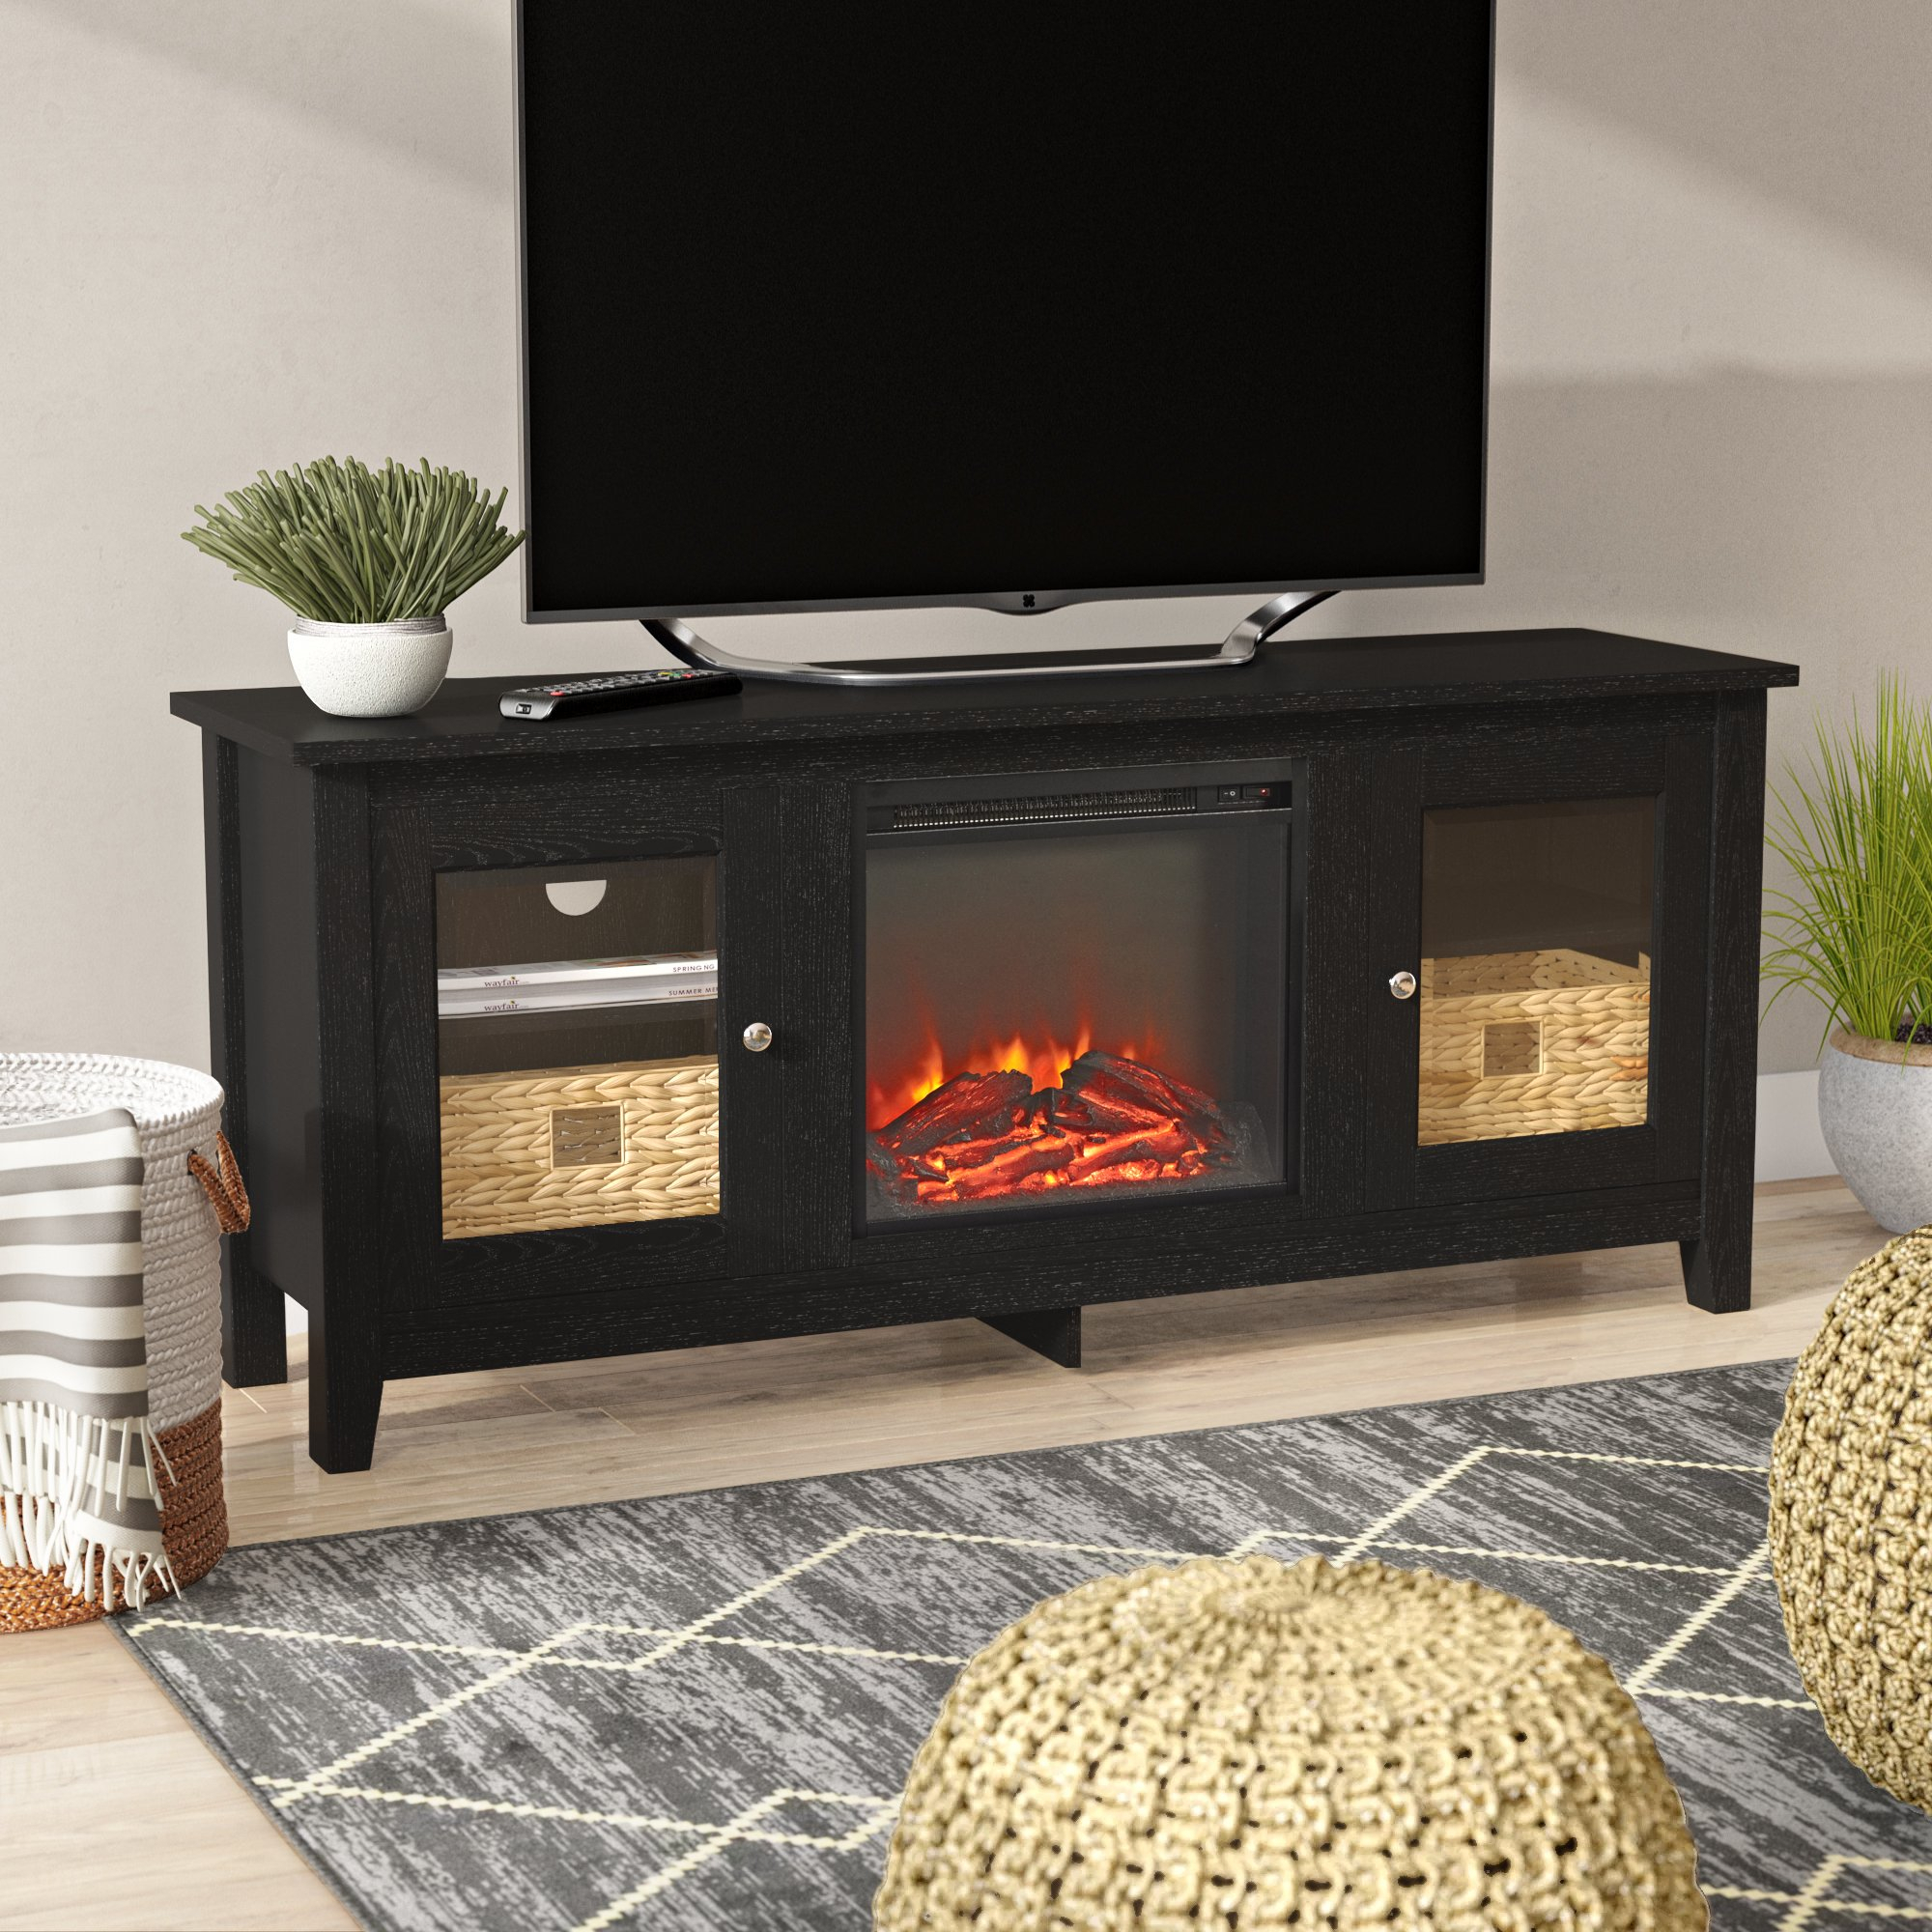 Fireplace Tv Stands & Entertainment Centers You'll Love   Wayfair (View 9 of 30)